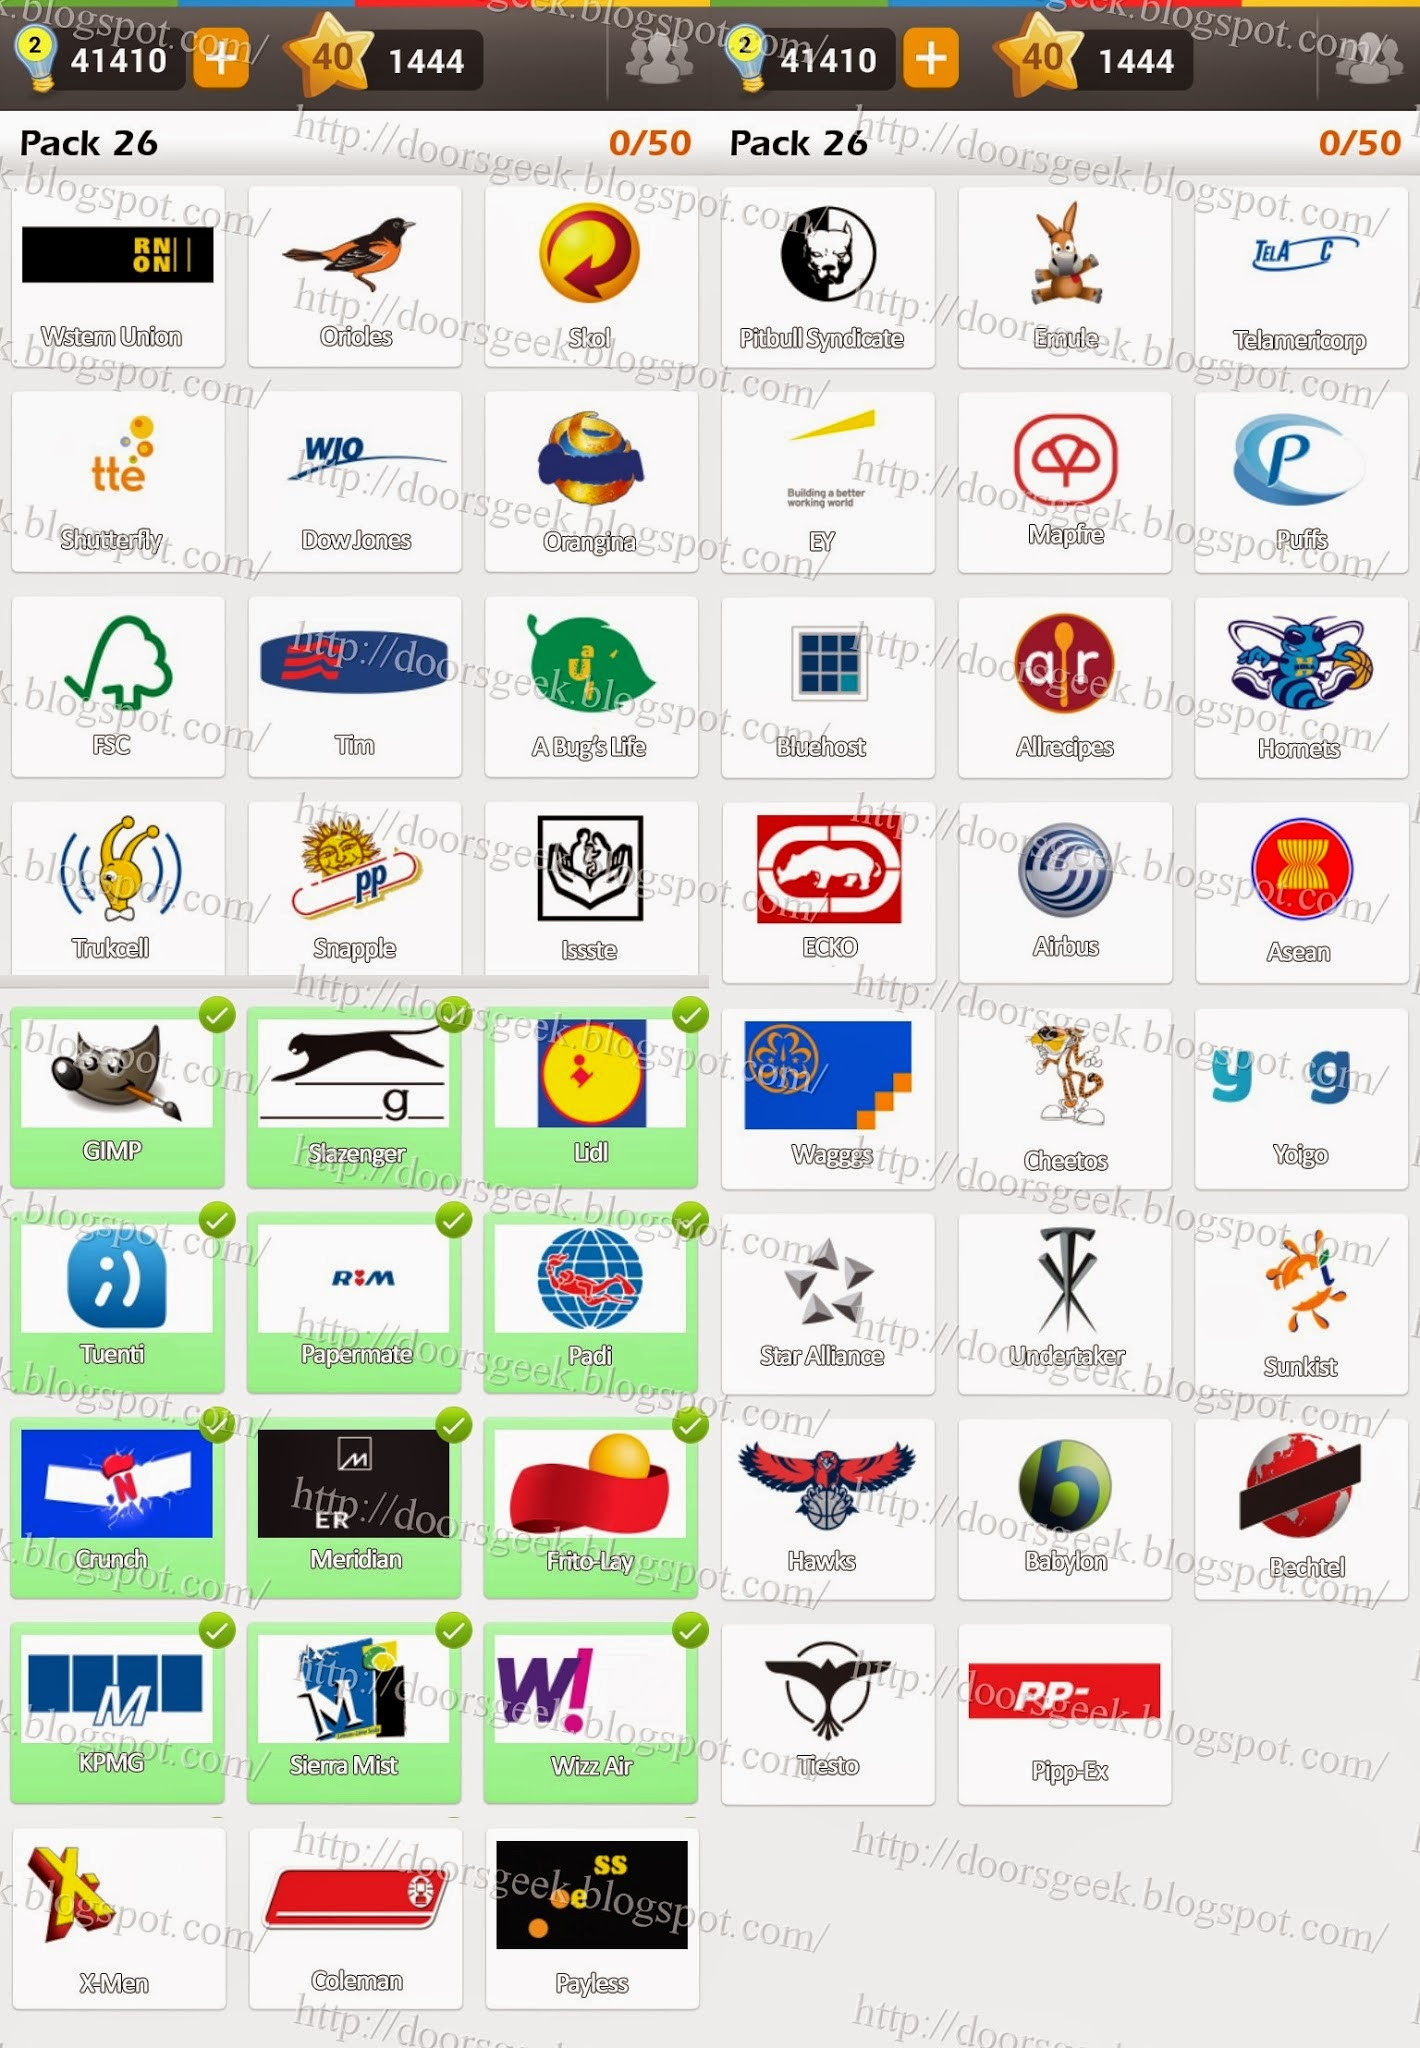 Logo game guess the brand bonus cars chainimage - Answers In Pack 26 Are